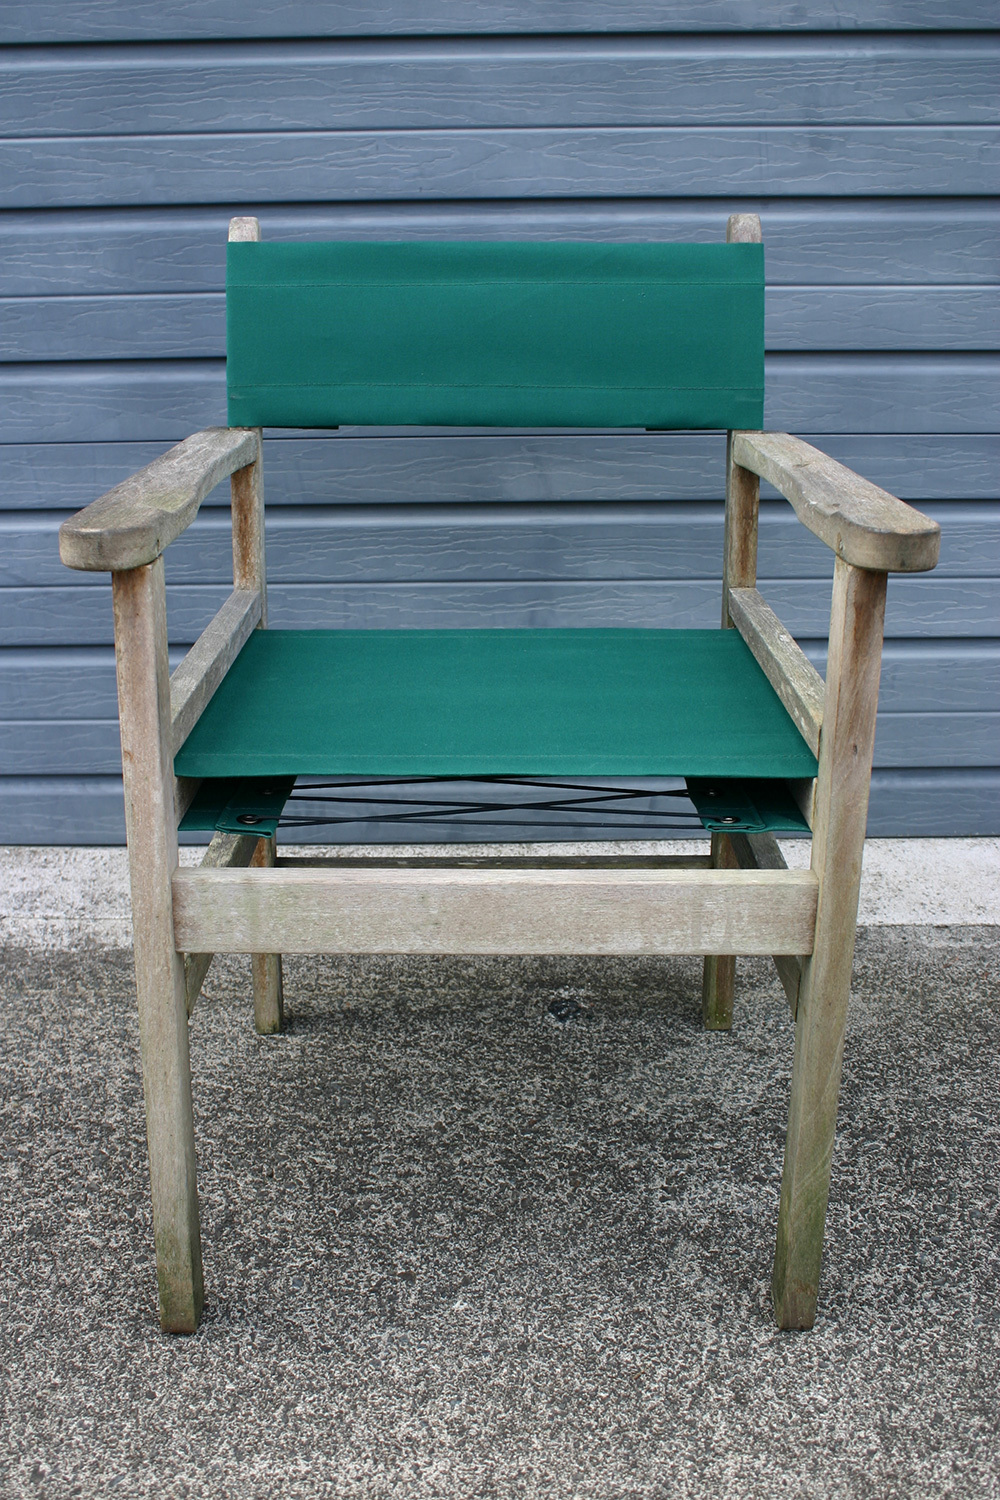 6/9 Chair recovered in Planosol Fir Green canvas